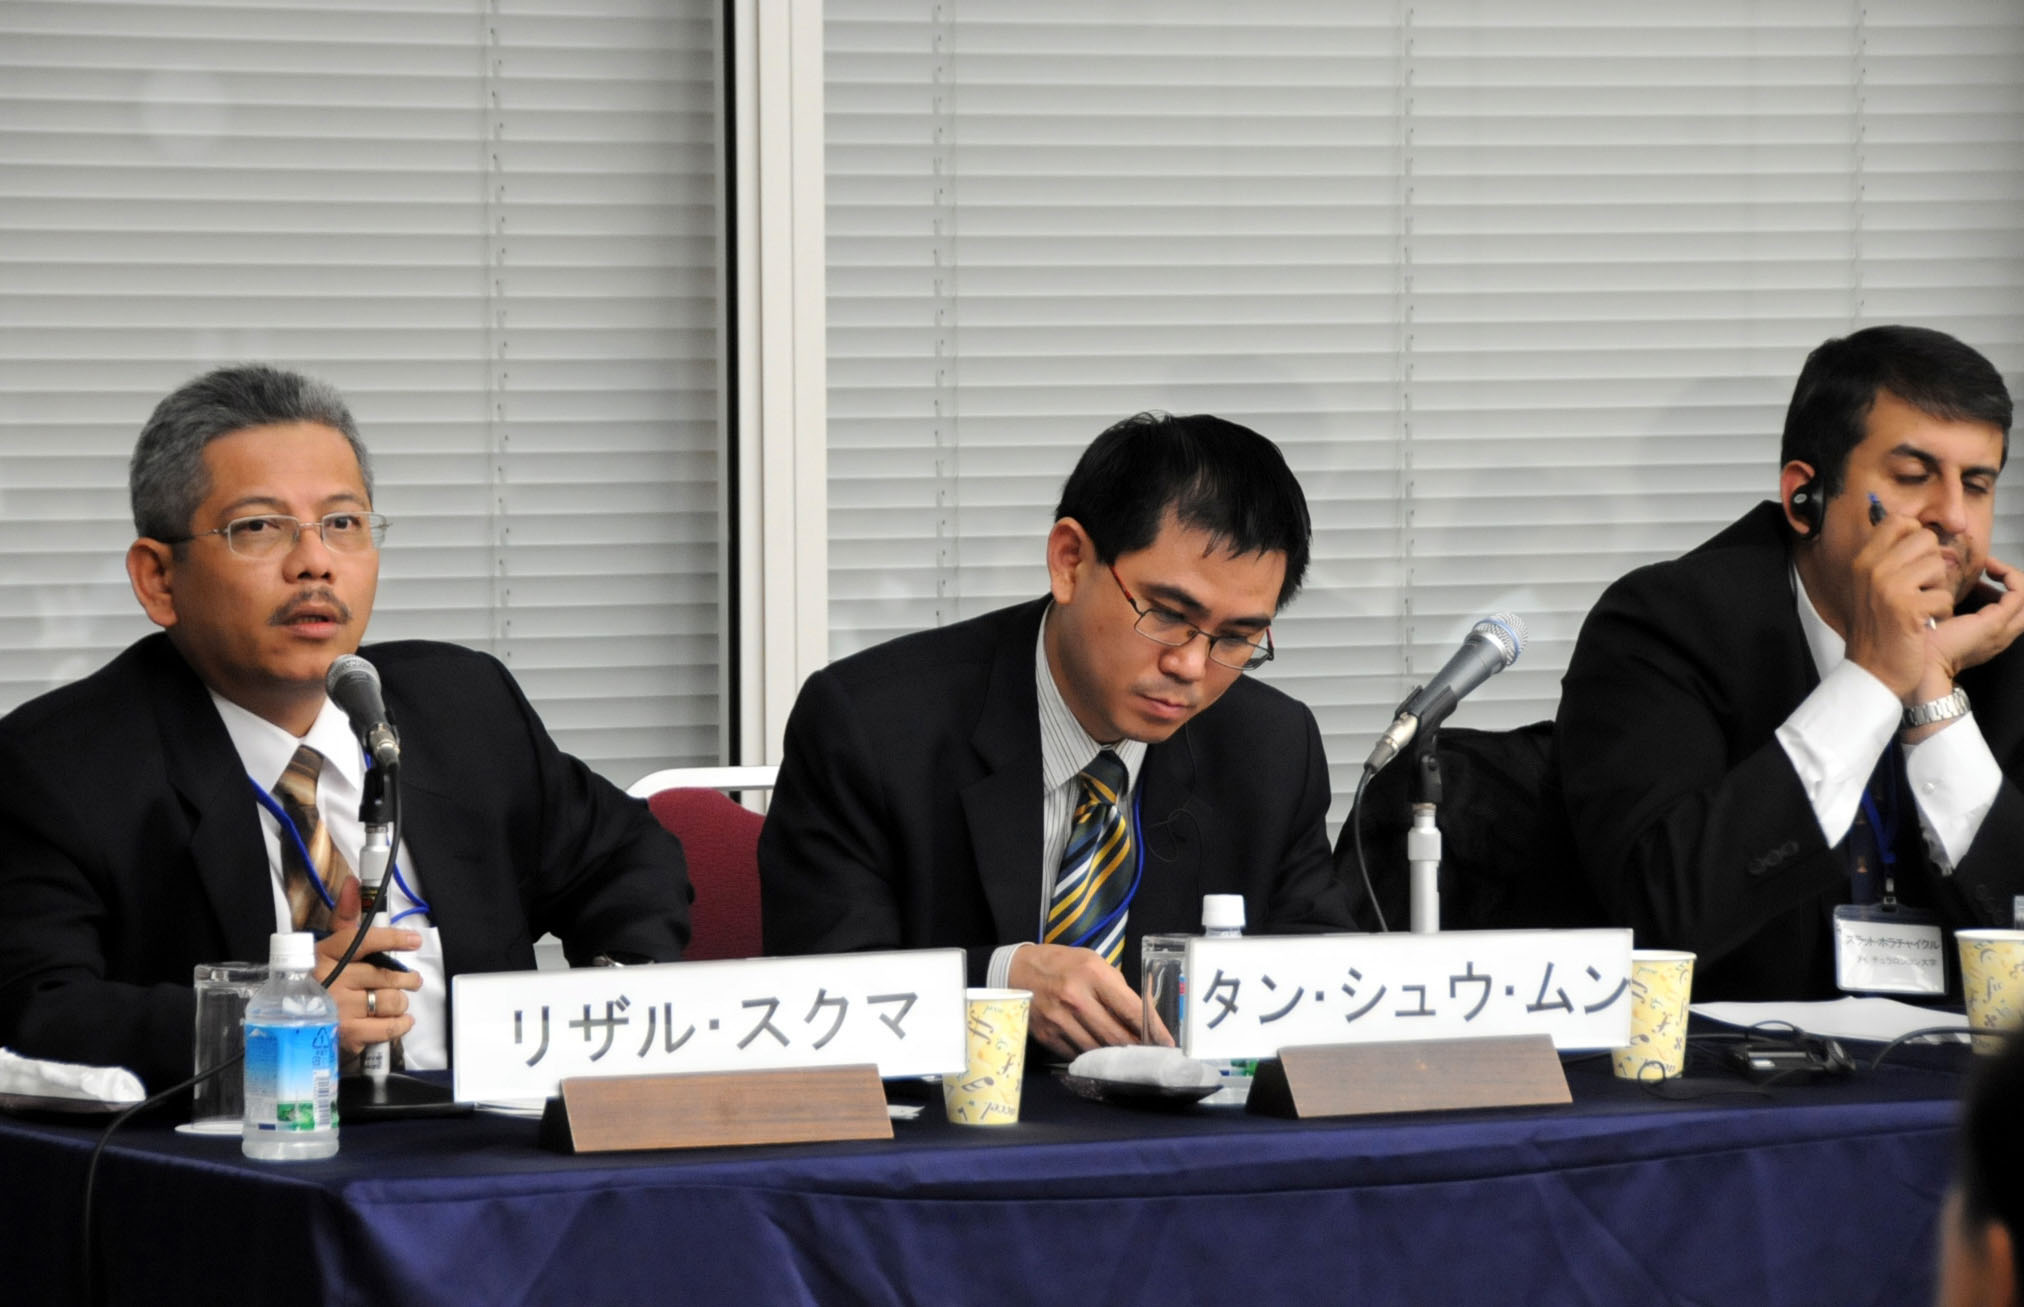 Asia's challenges: Rizal Sukma (left) from the Center for Strategic and International Studies, Jakarta, discusses the effects of major power rivalry on Southeast Asian economies as Tang Siew Mun from the Institute of Strategic and International Studies, Malaysia, listens during a Nov. 8 symposium in Tokyo. | SATOKO KAWASAKI